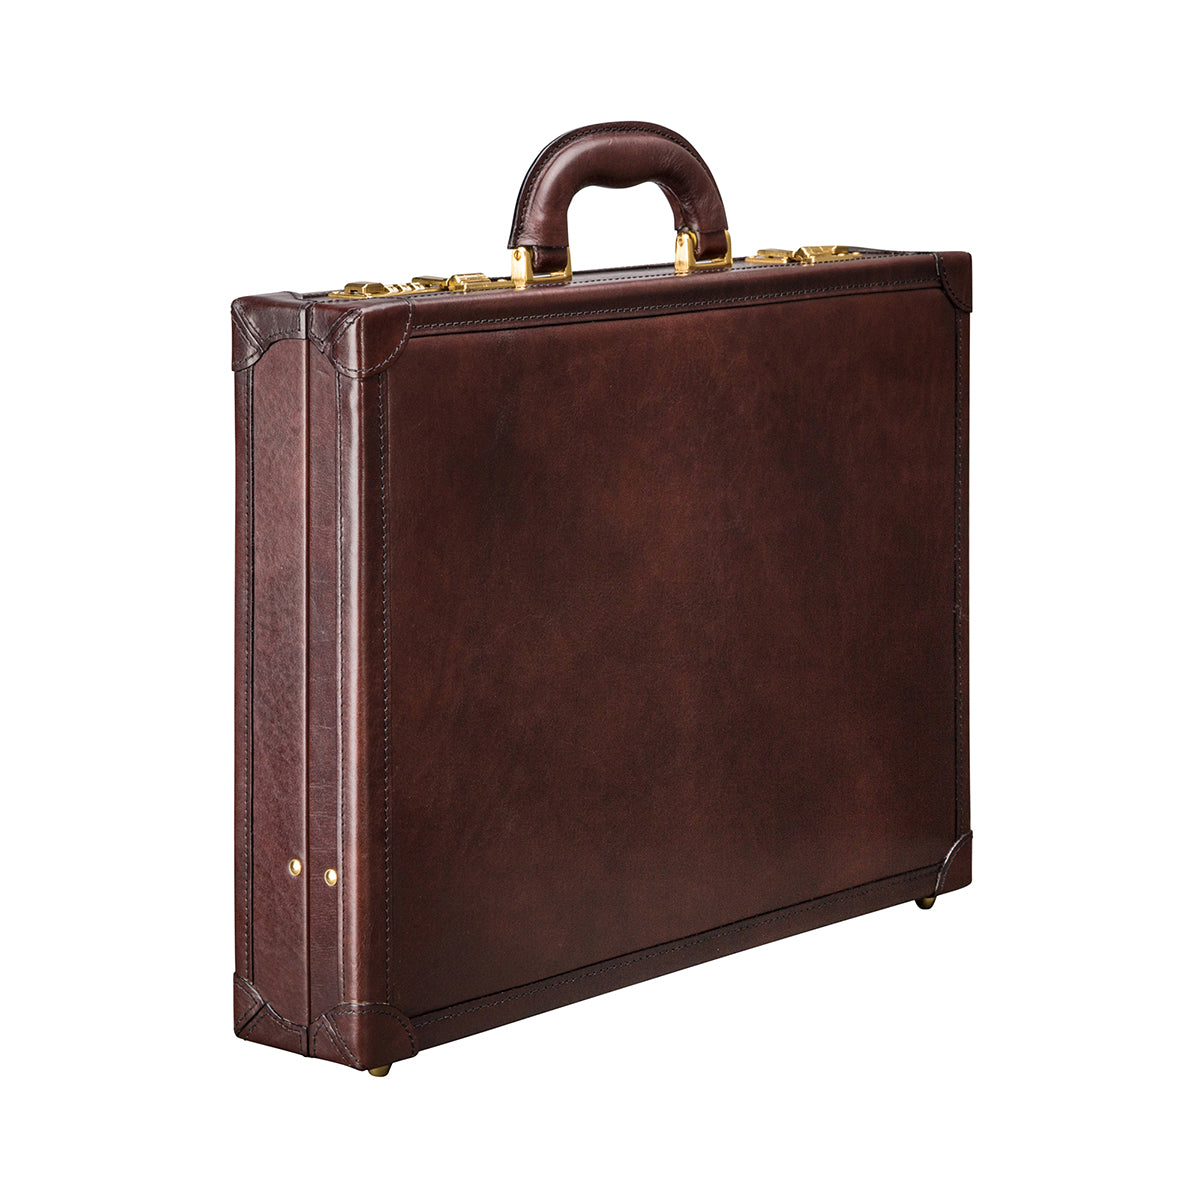 Image 2 of the 'Scanno' Slim Dark Chocolate Veg-Tanned Leather Business Attaché  Case